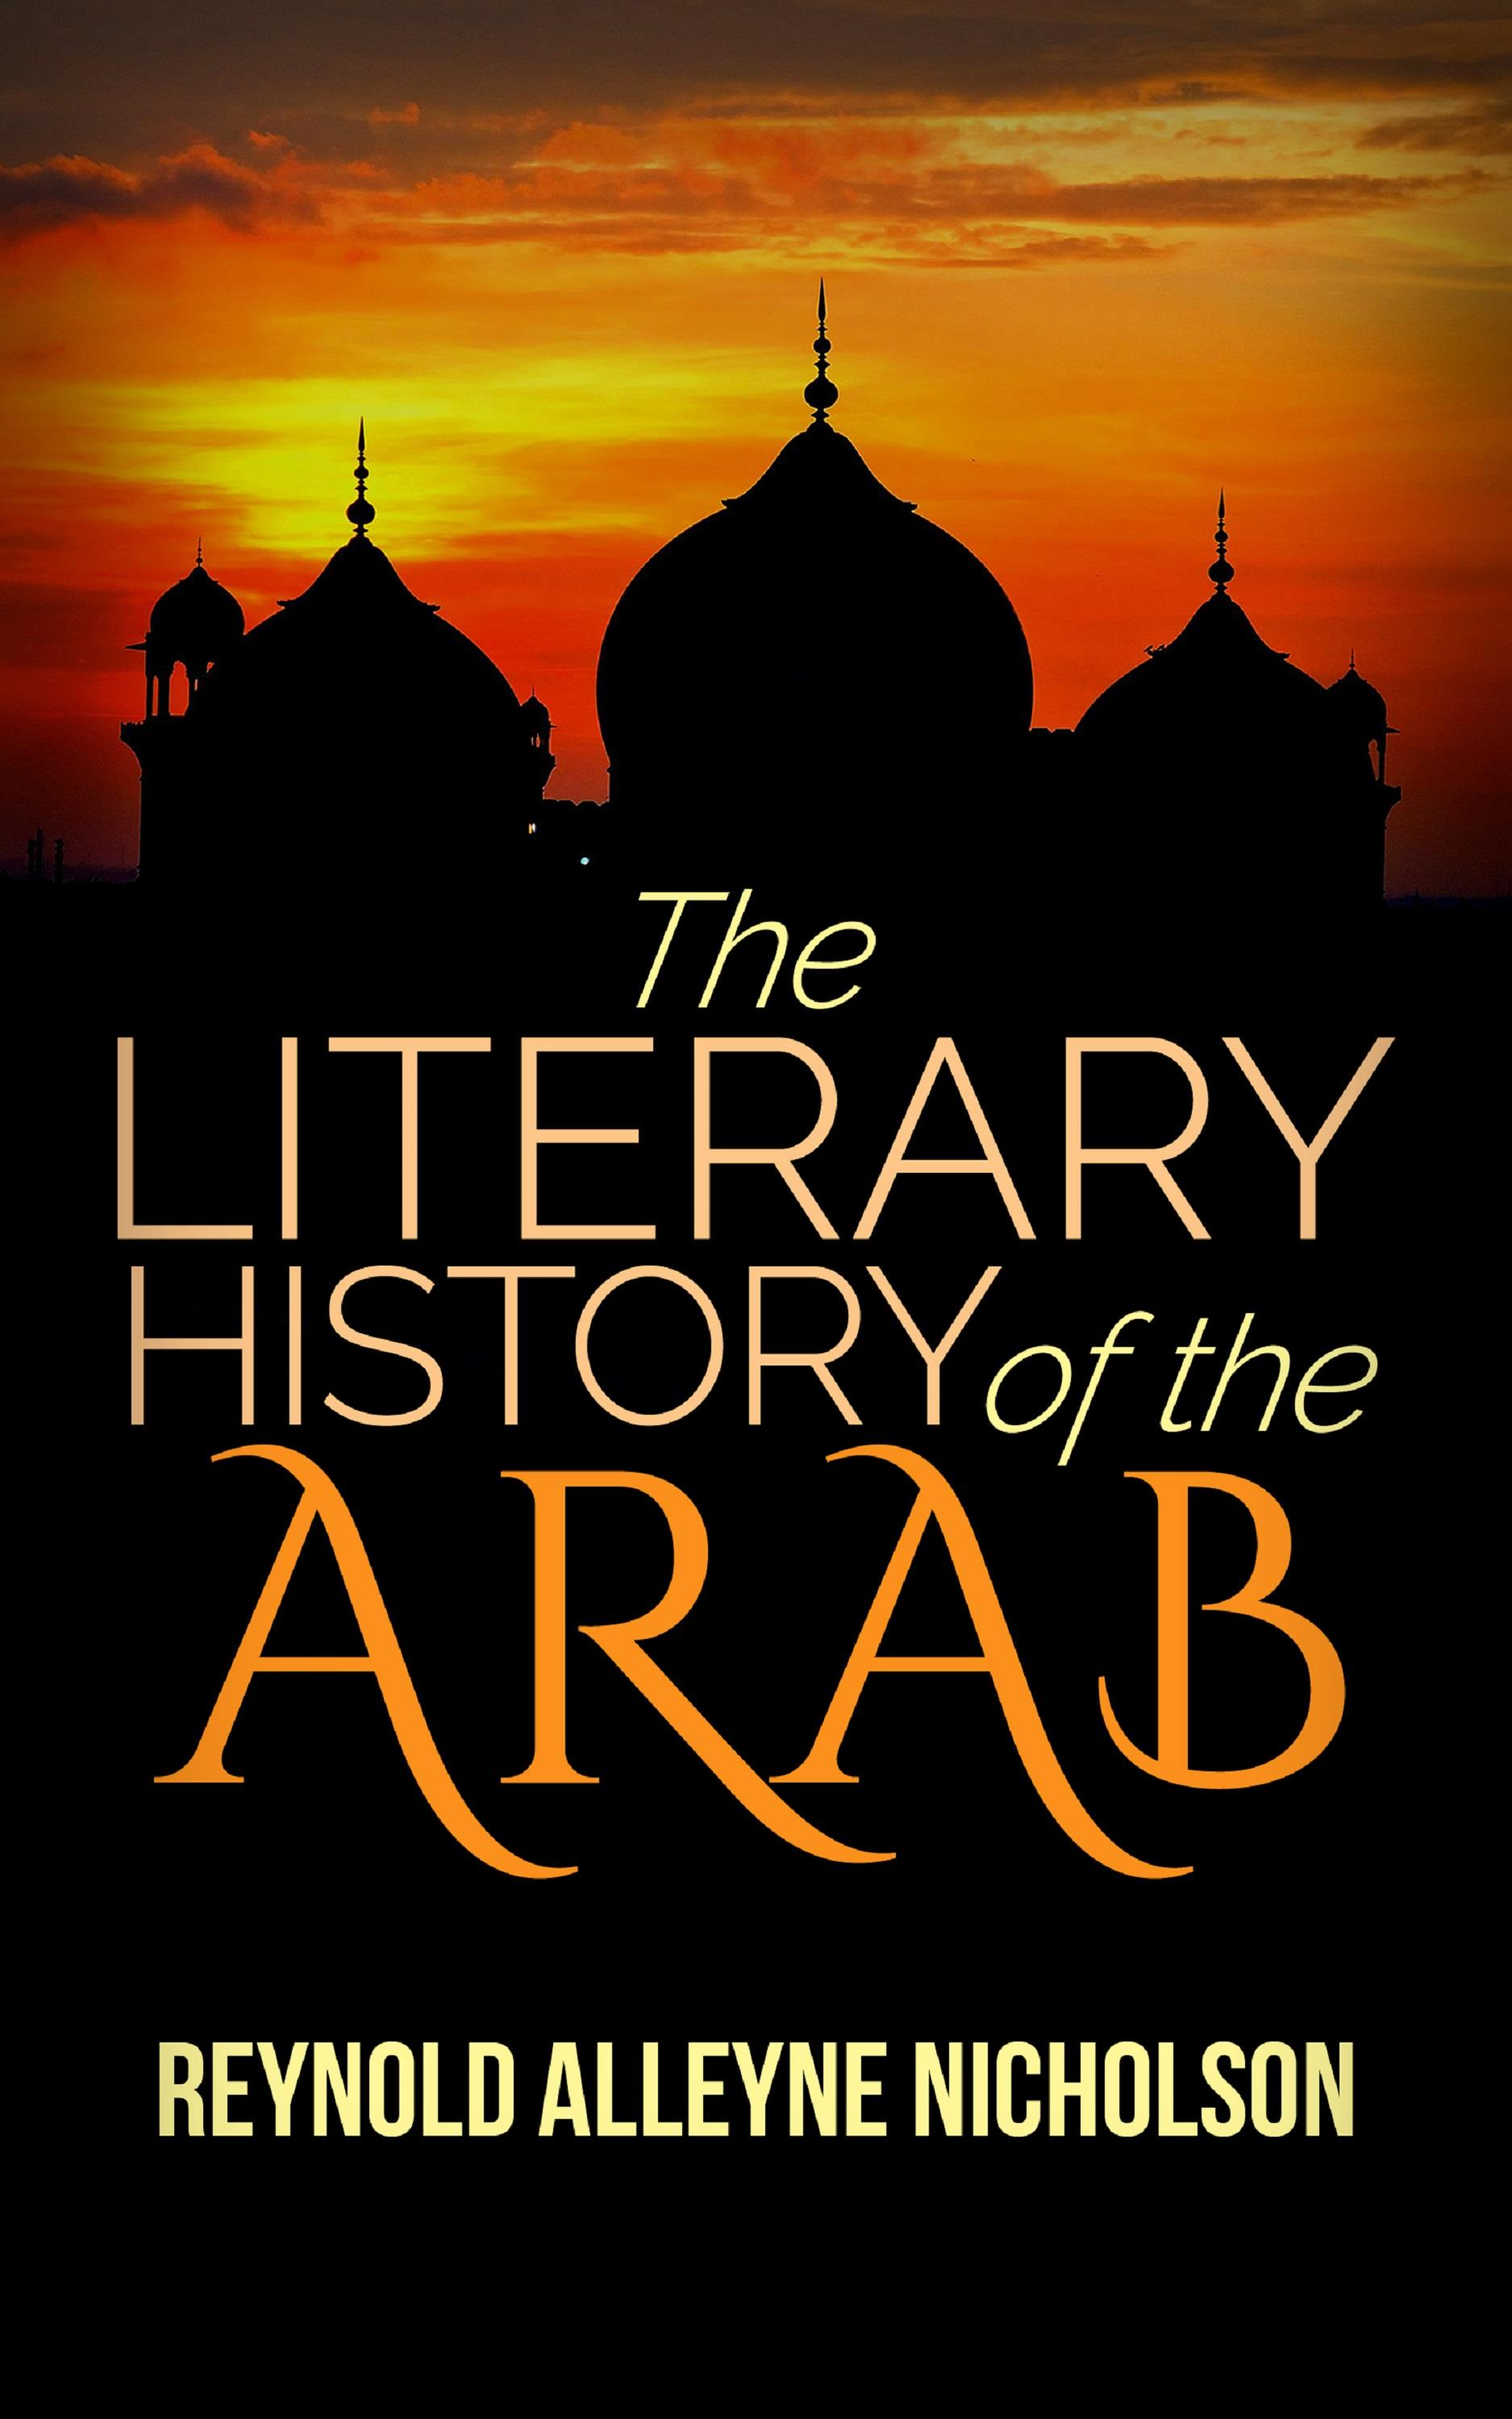 The Literary History of the Arab